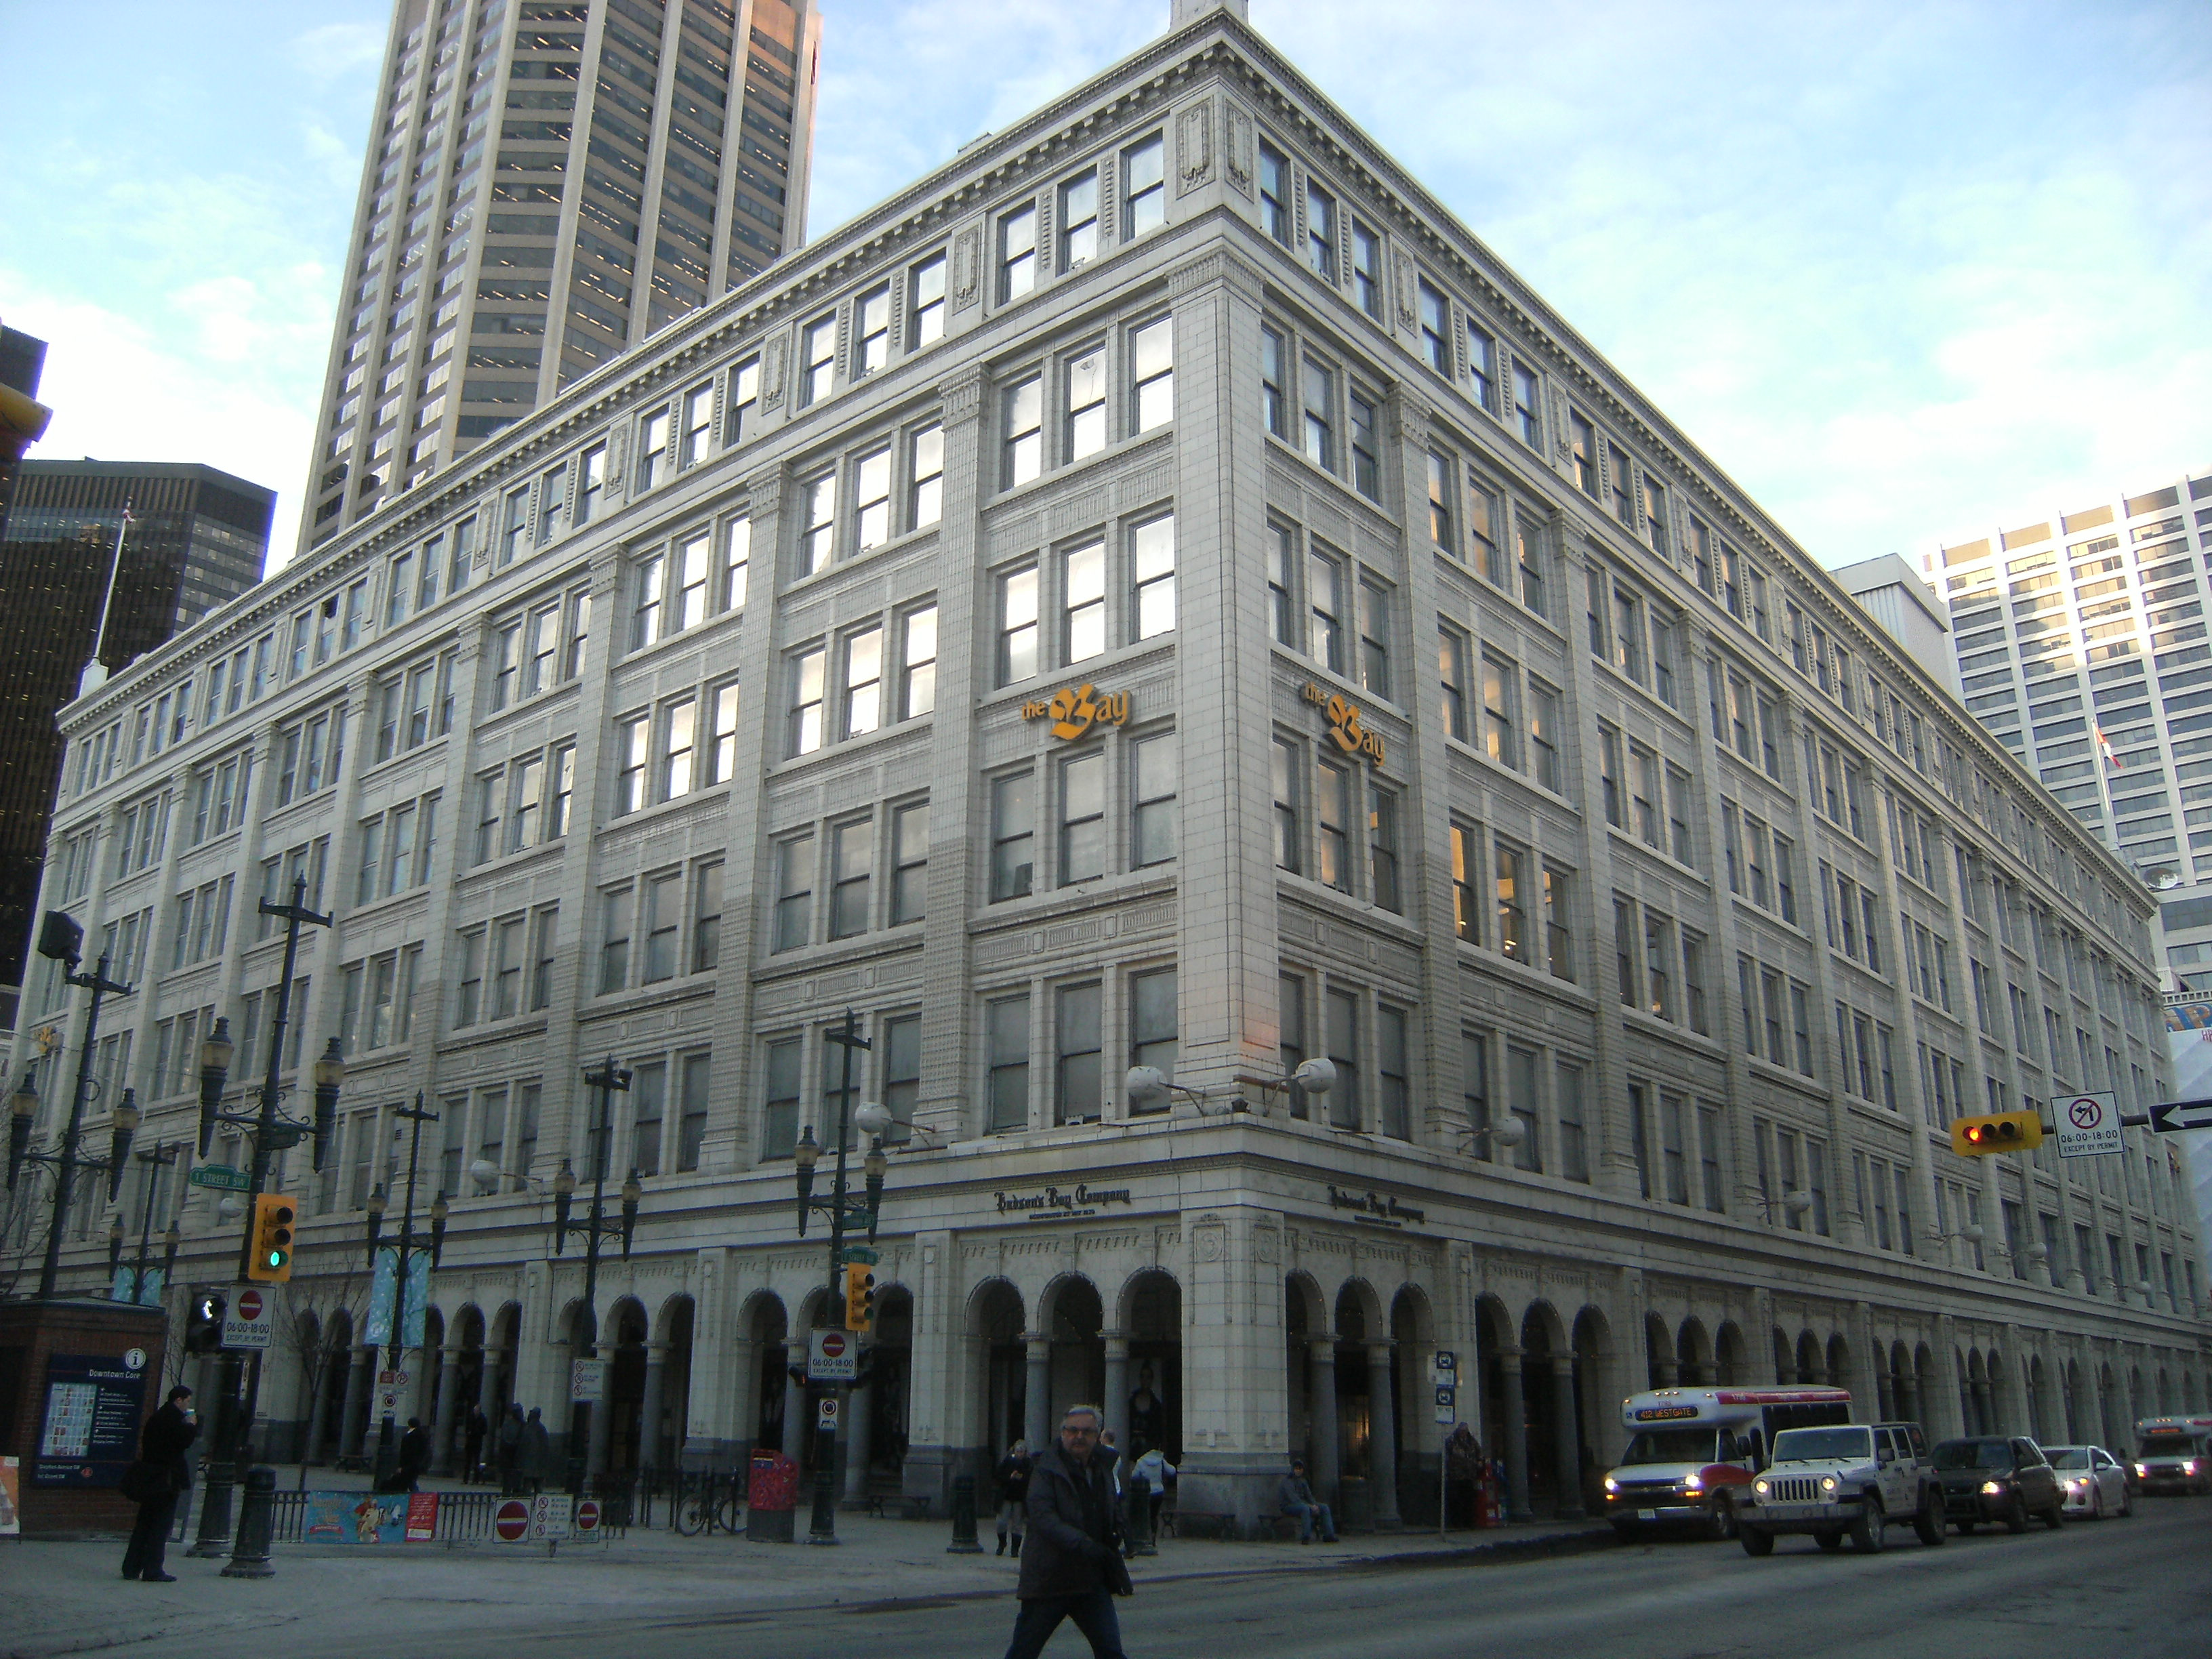 We went to Hudson's Bay looking for the original wool covers. However, the selection is very limited, and the prices are outrageous. It's definitely not what was originally advertised online. The store was empty. On the plus side, employees were very helpful in answering any questions that we had.3/5().